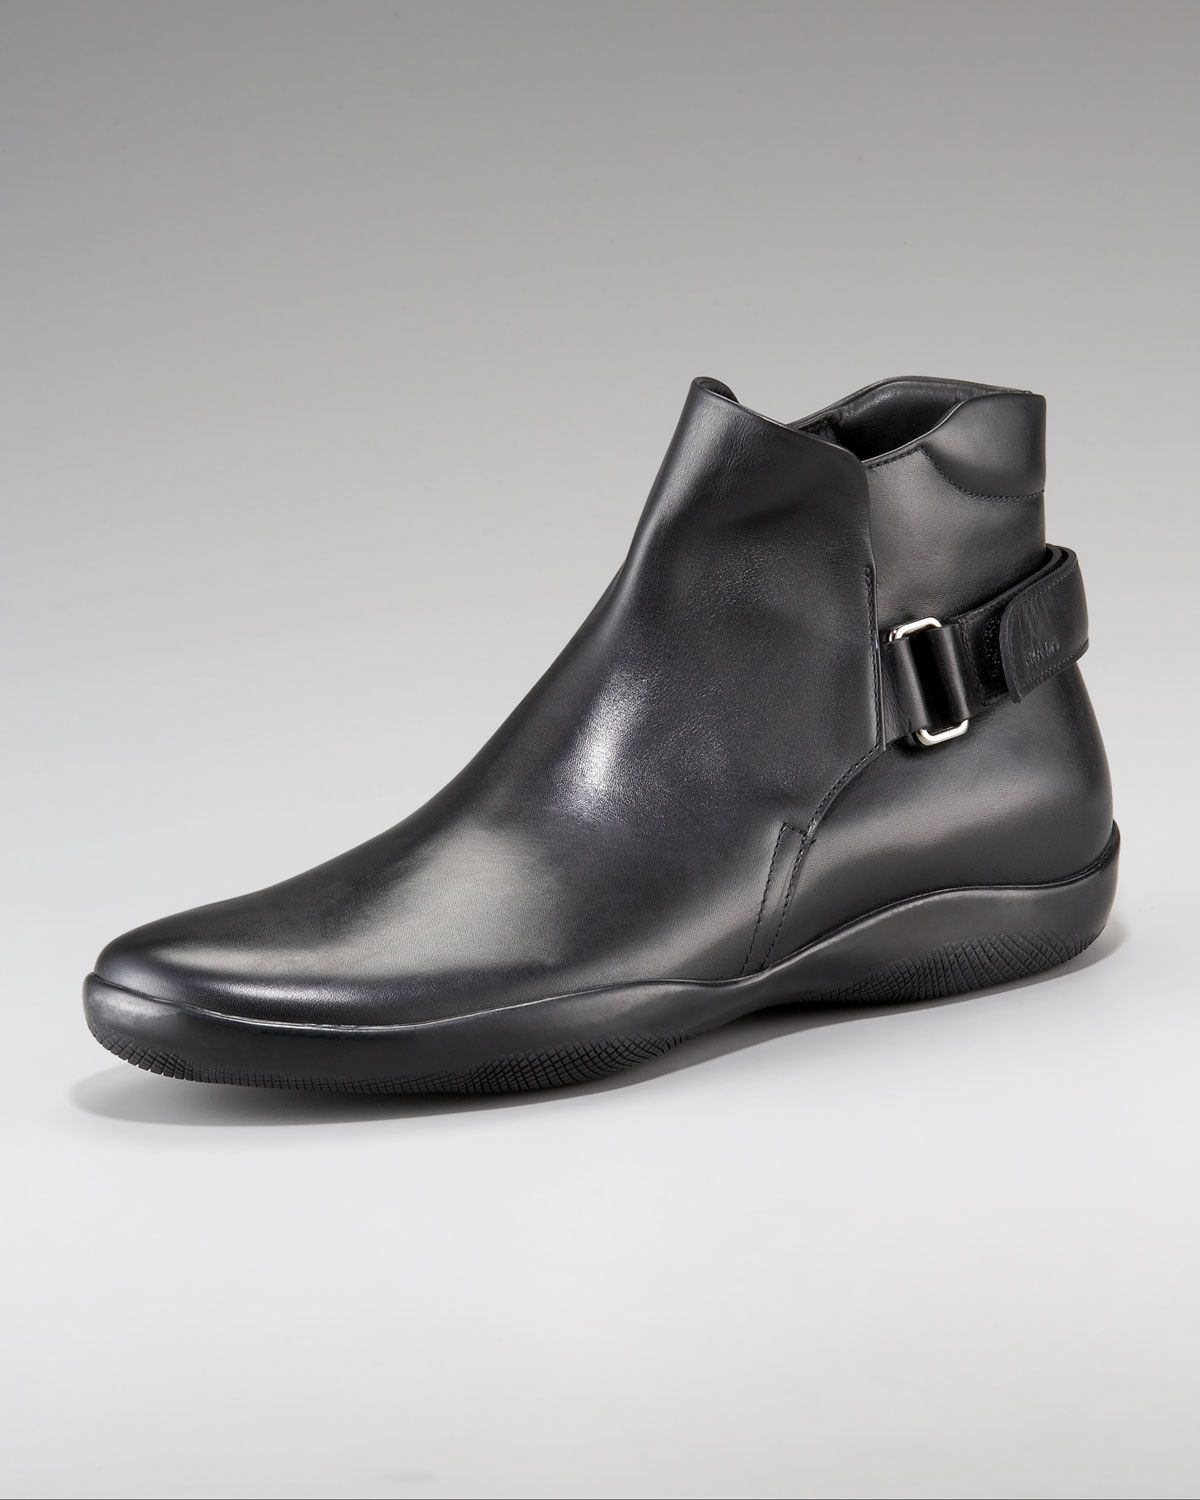 Prada Pull-On Boot with Strap.  3a94252f4dca